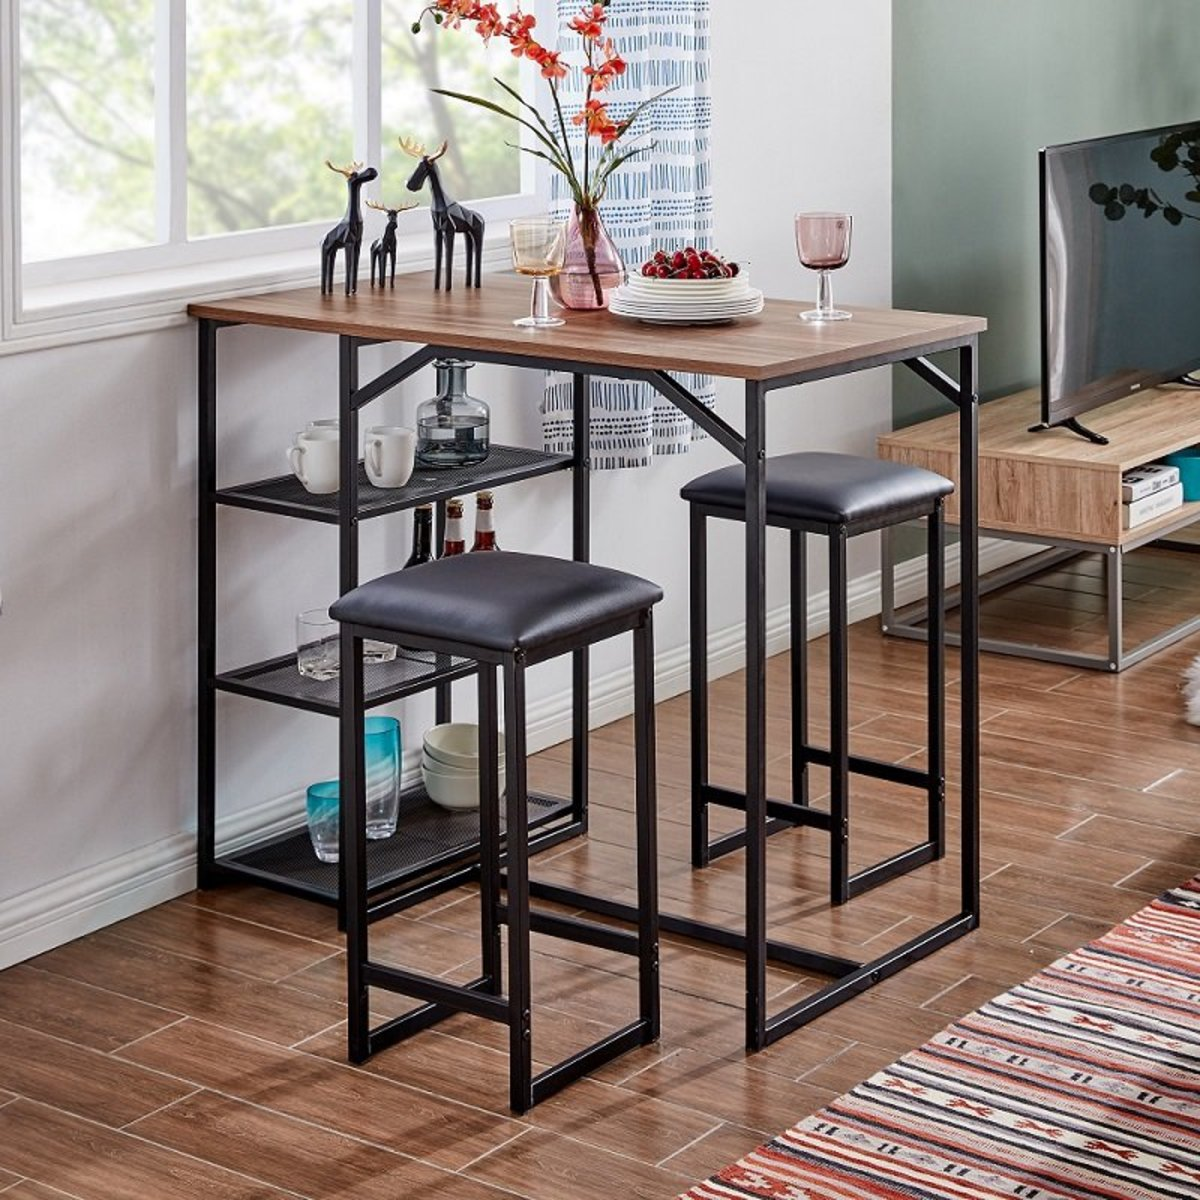 BAR SET WITH ONE BAR TABLE AND TWO BAR CHAIRS